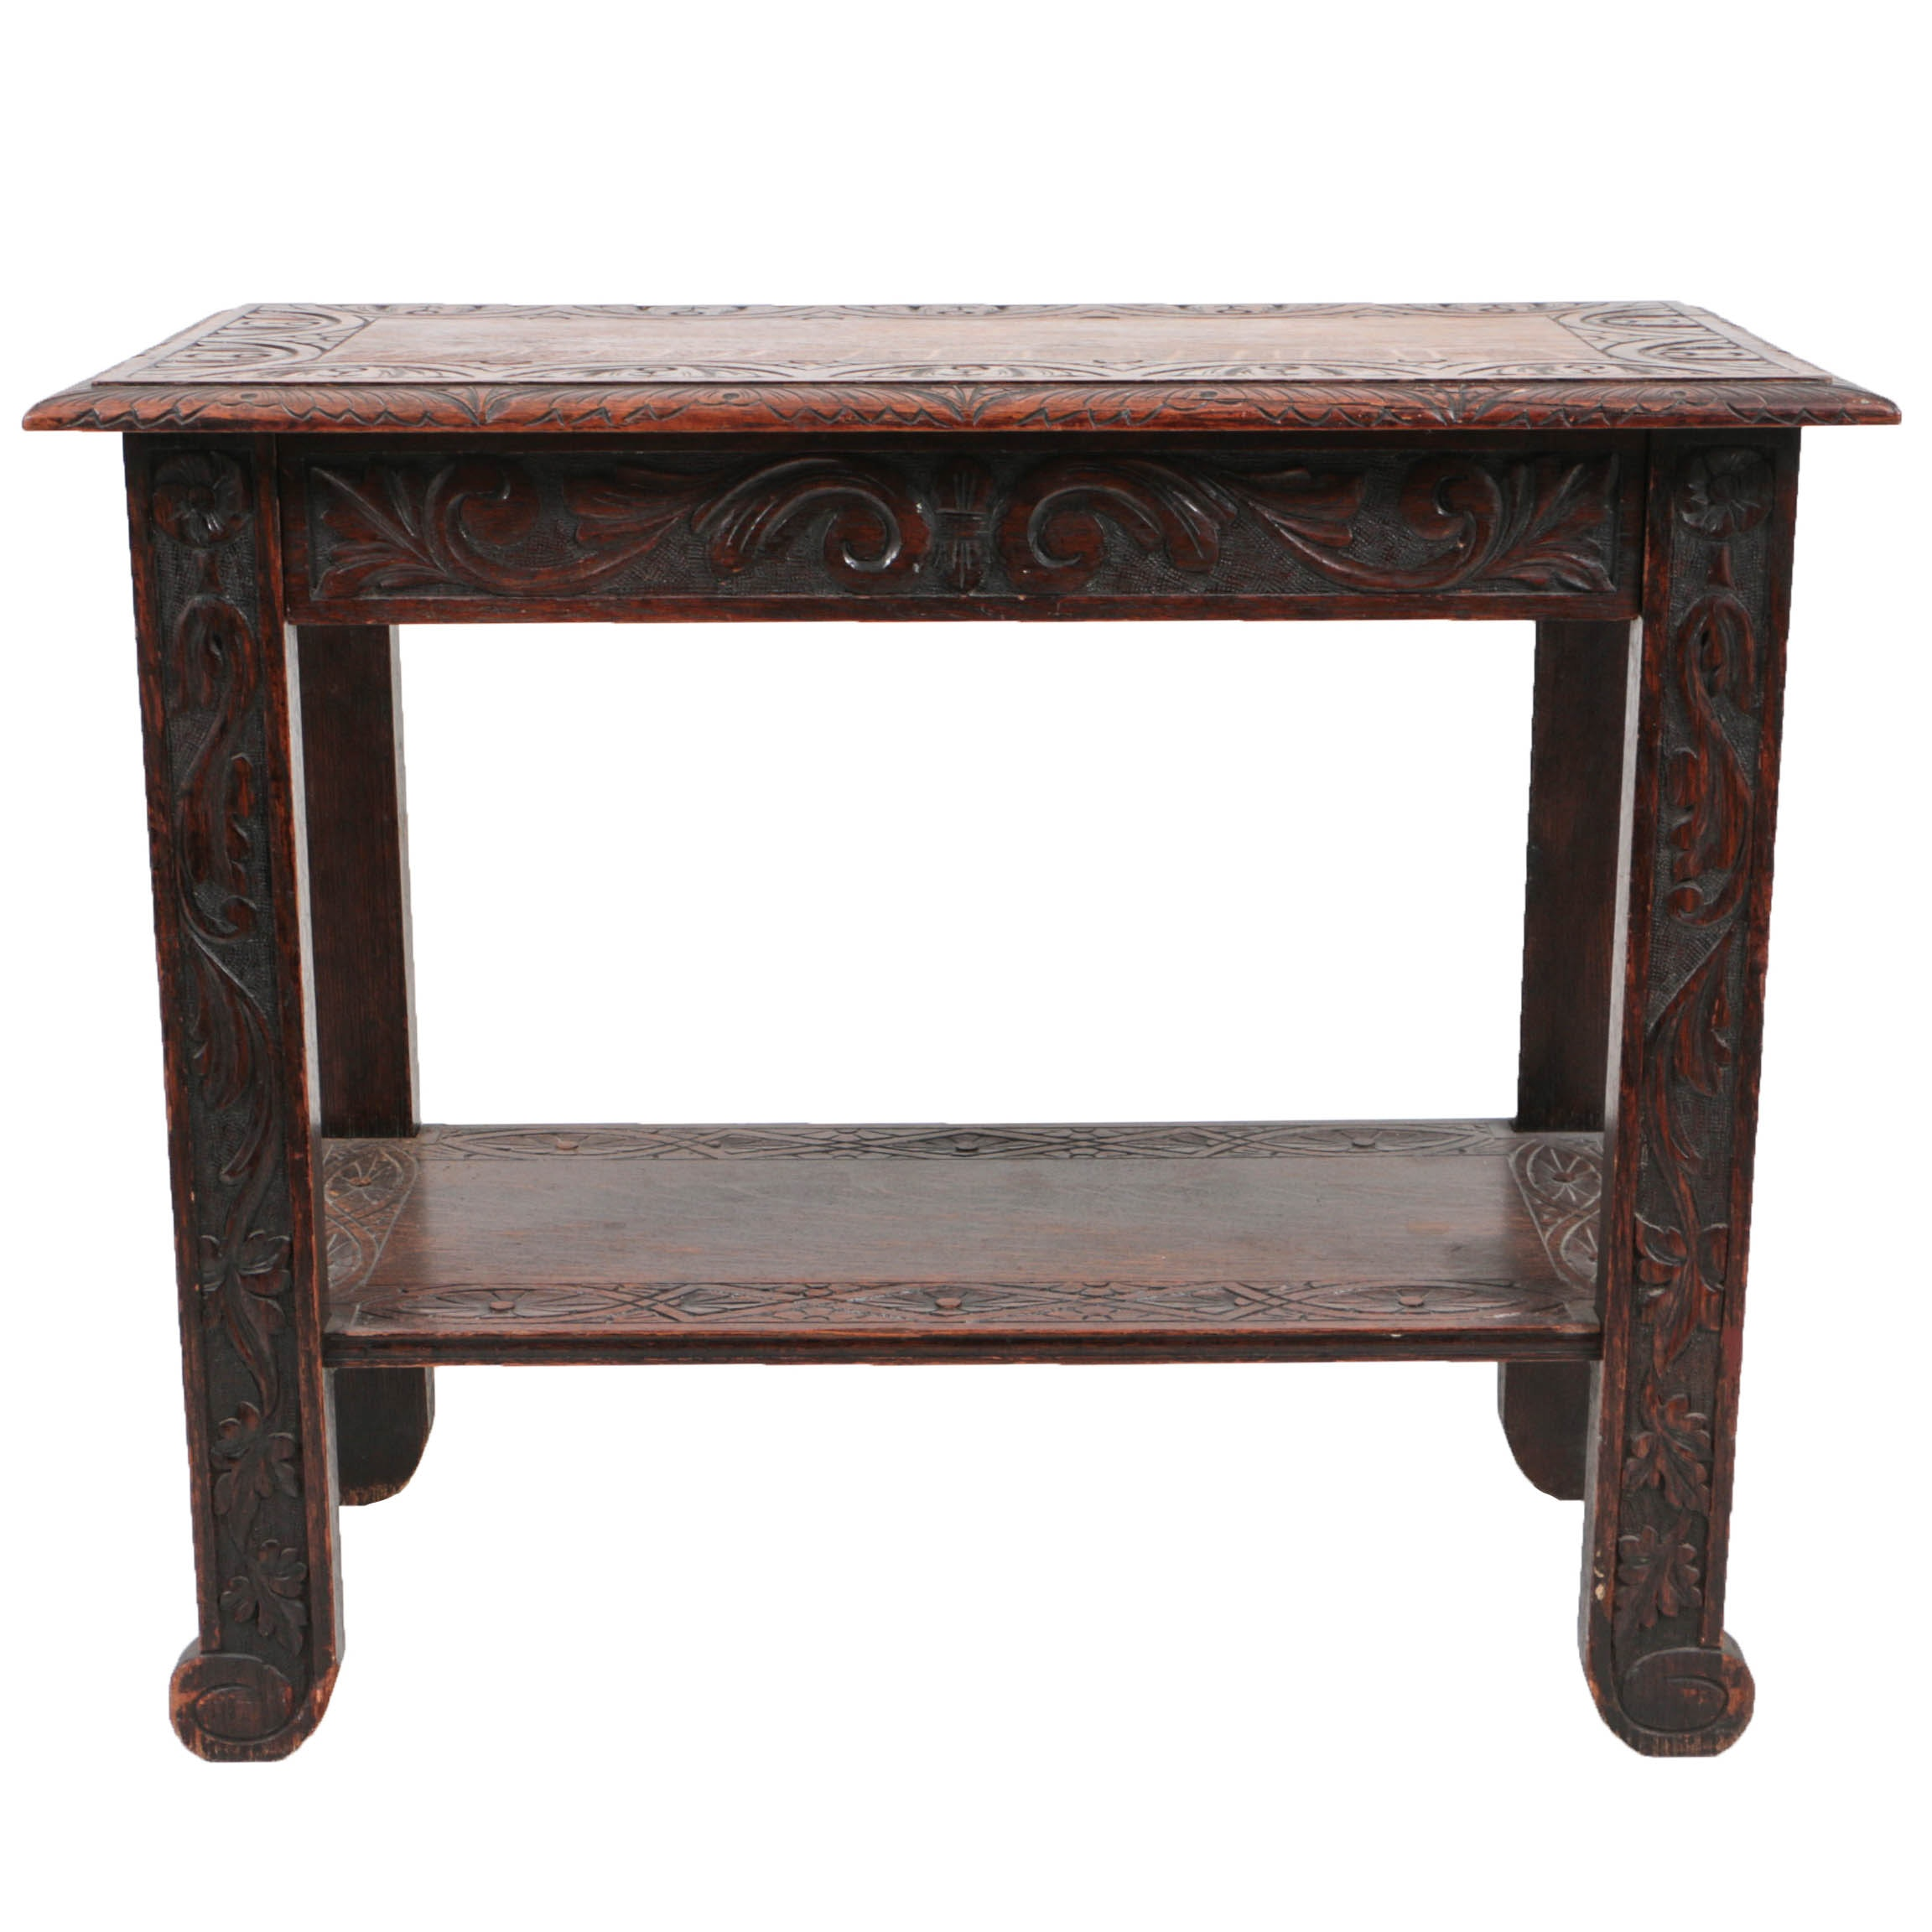 Antique Jacobean Style Carved Oak Console Table with Drawer